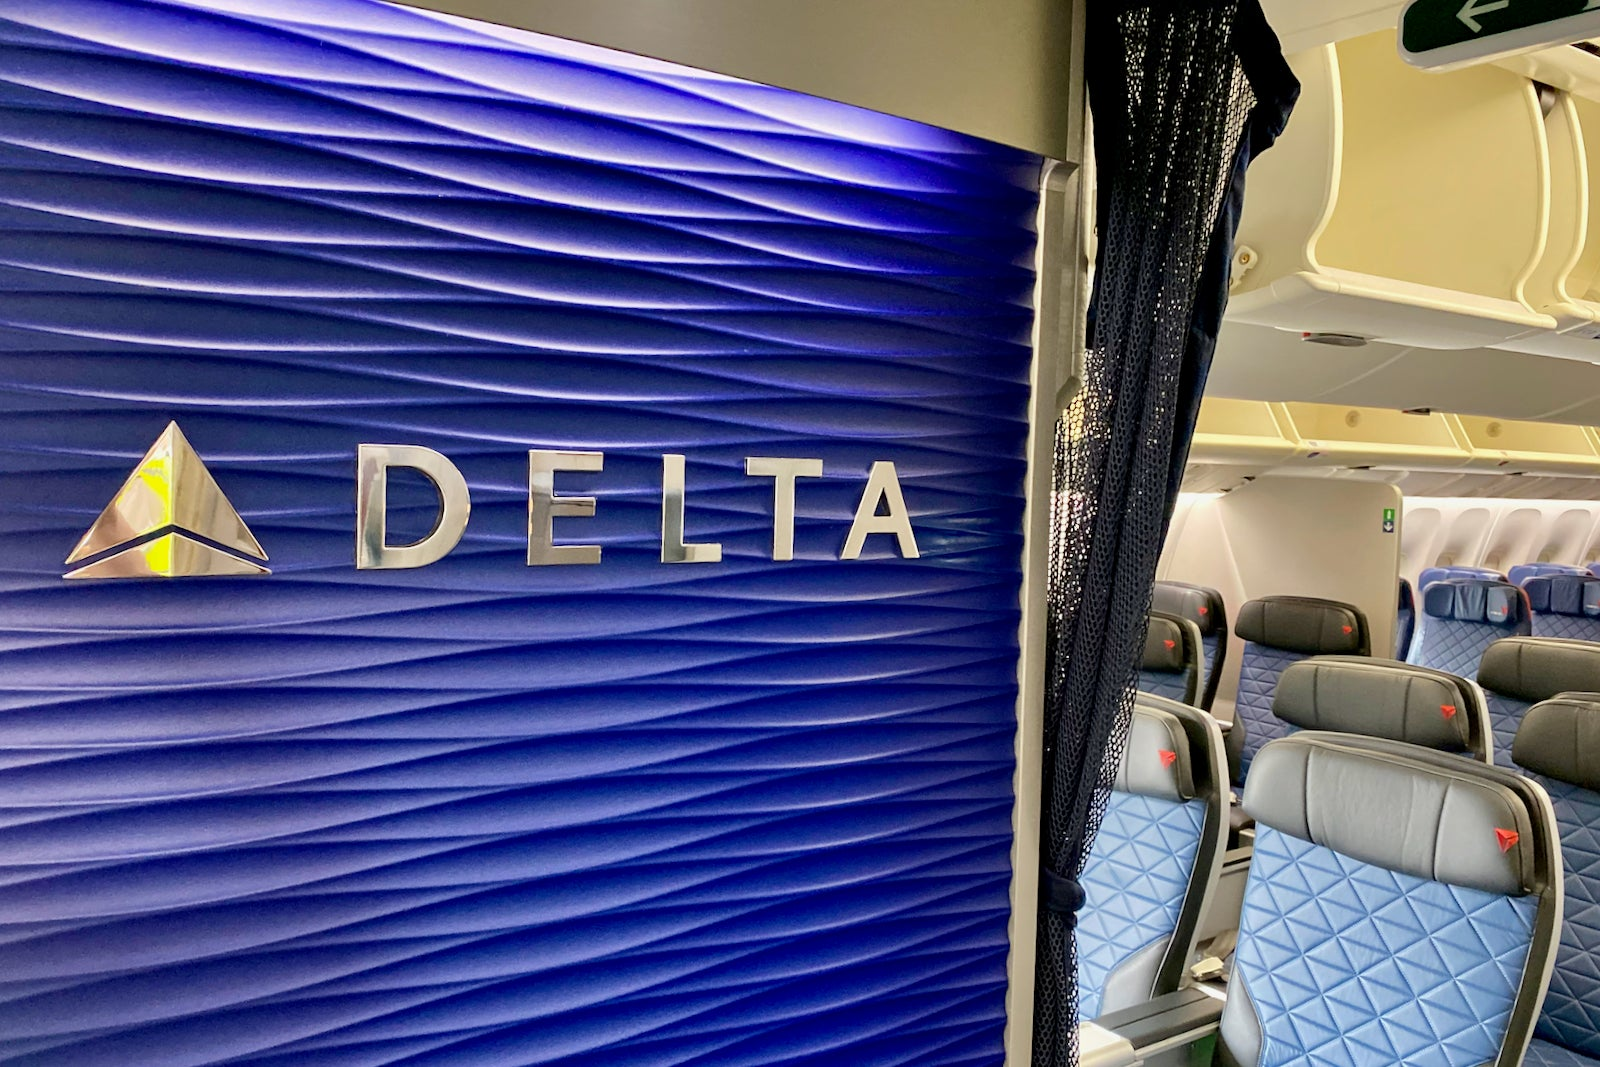 Delta's swanky Airbus A330-900neo finds a home on a domestic transcon route for the first time - The Points Guy